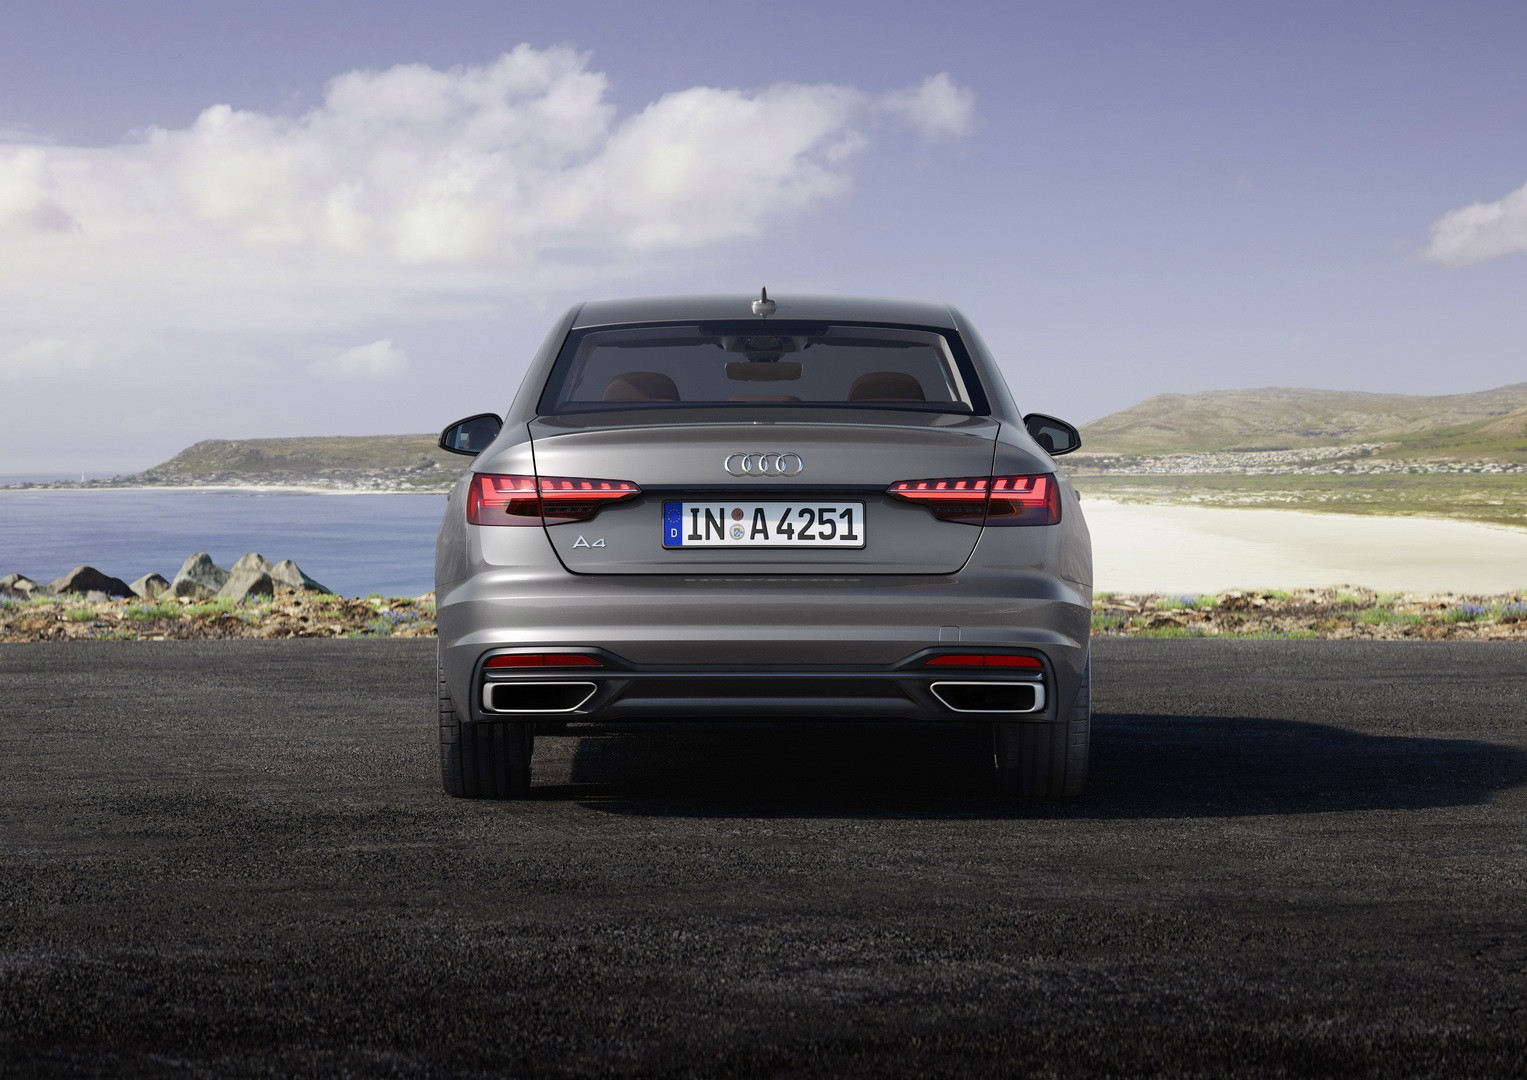 all-new-2023-audi-a4-wont-go-full-ev-just-yet-will-stick-with-gasoline-and-diesel-power_6.jpg